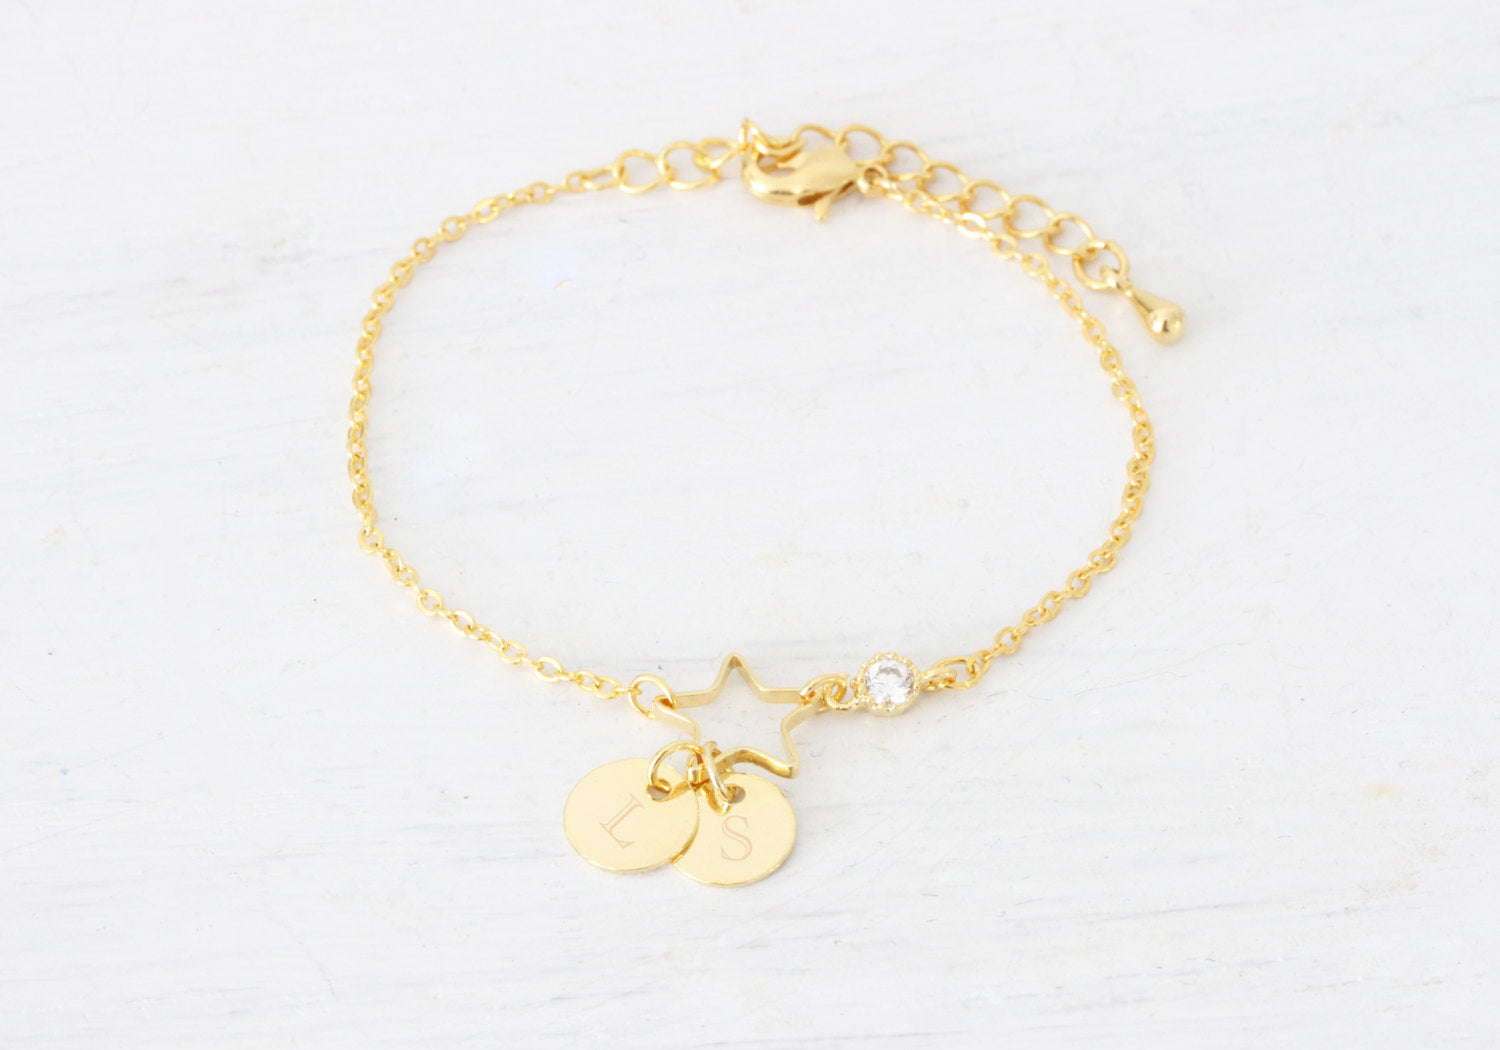 Gold Initial bracelets, Personalized Gold Bracelet, Gold Medal, Gold Engraved Bracelet, Bridesmaids Gift, Wedding Gift, Friendship Bracelet - product_type] - Beautiz